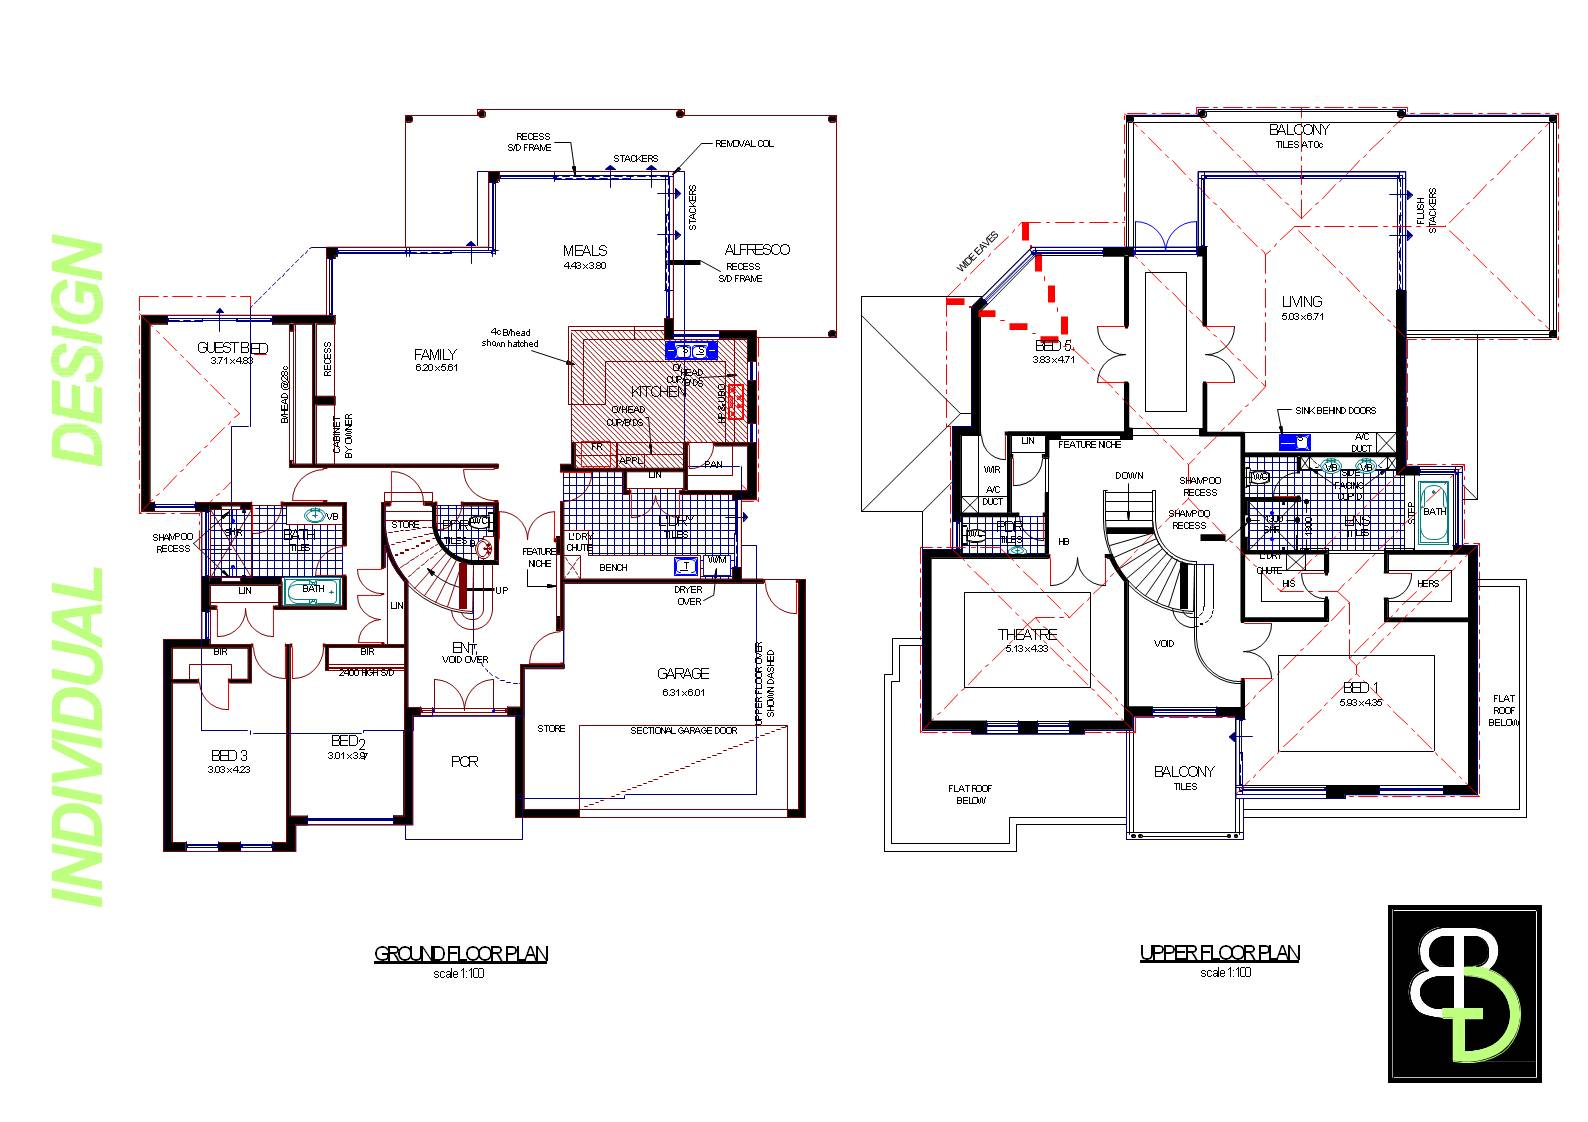 plan story house floor plans story home plans simple designed provide energy story coastal home plans